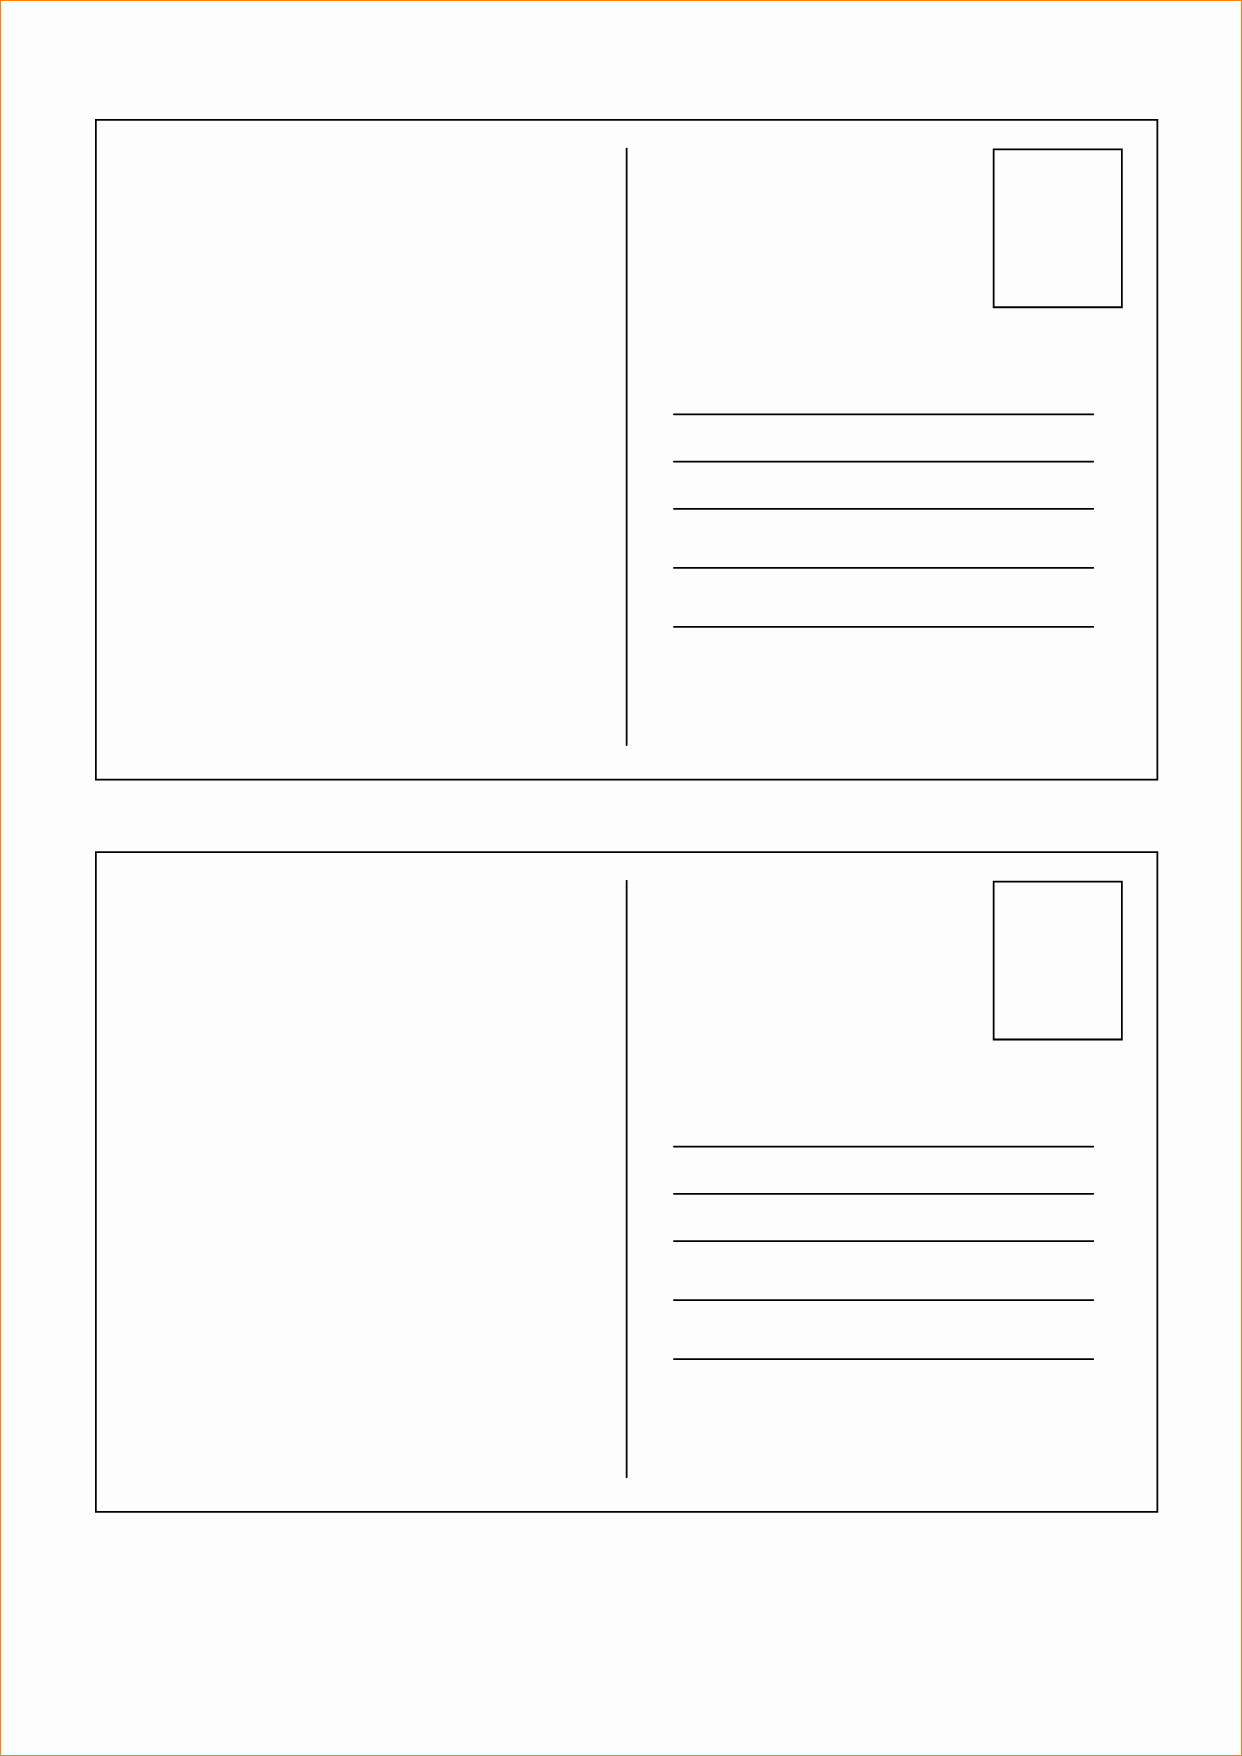 5x7 Postcard Mailing Template Lovely 5x7 Postcard Template for Word Free Postcard Templates